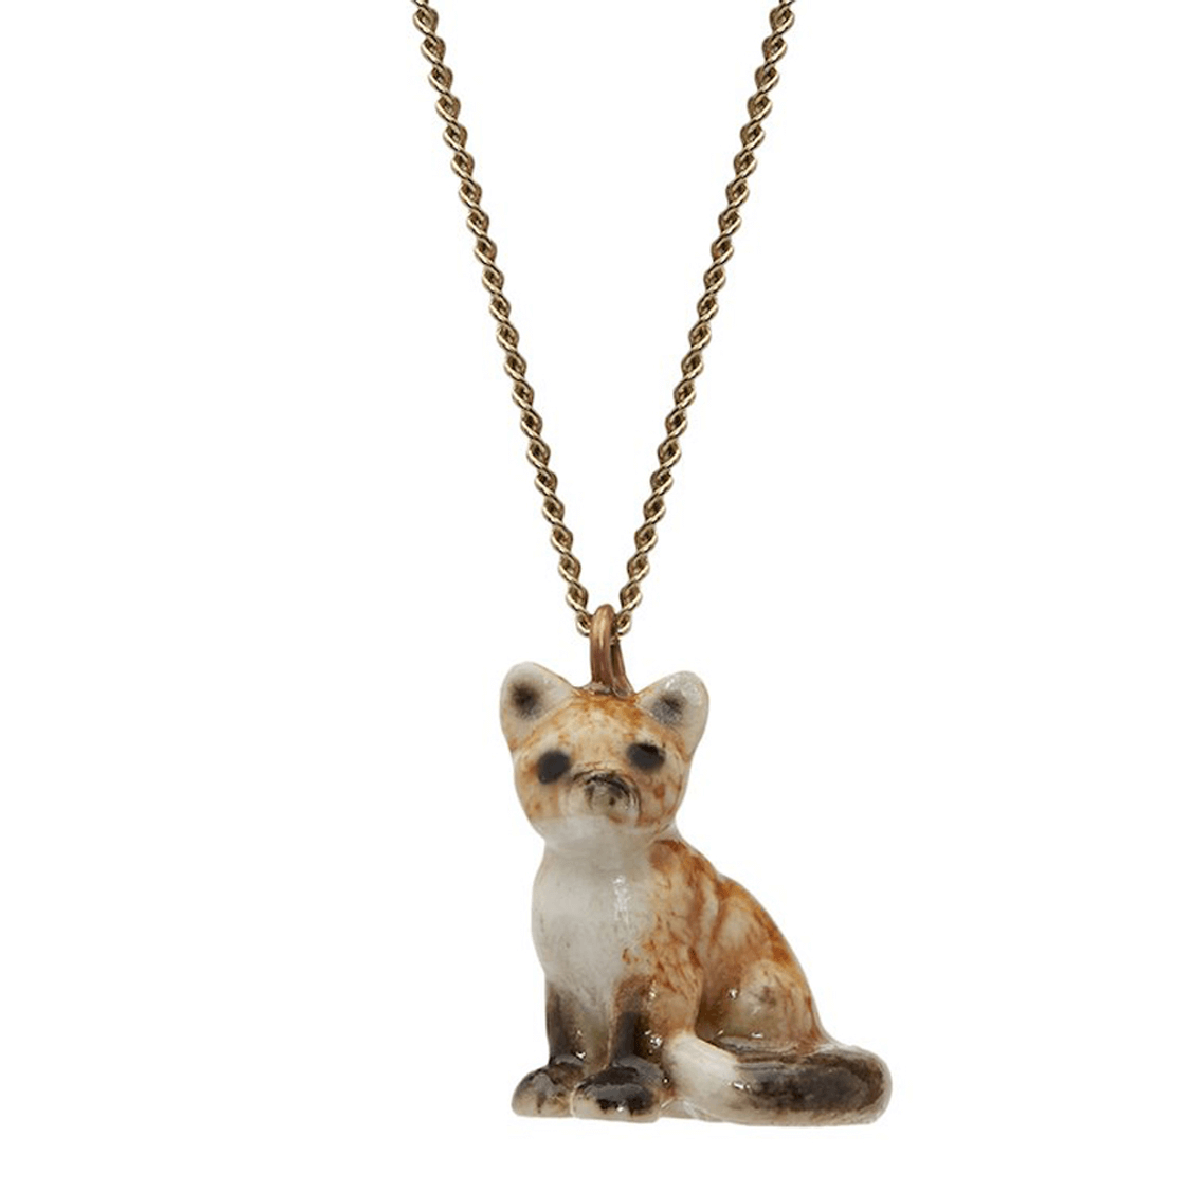 And Mary, collier pendentif en porcelaine Petit Renard assis - cassisroyal.com